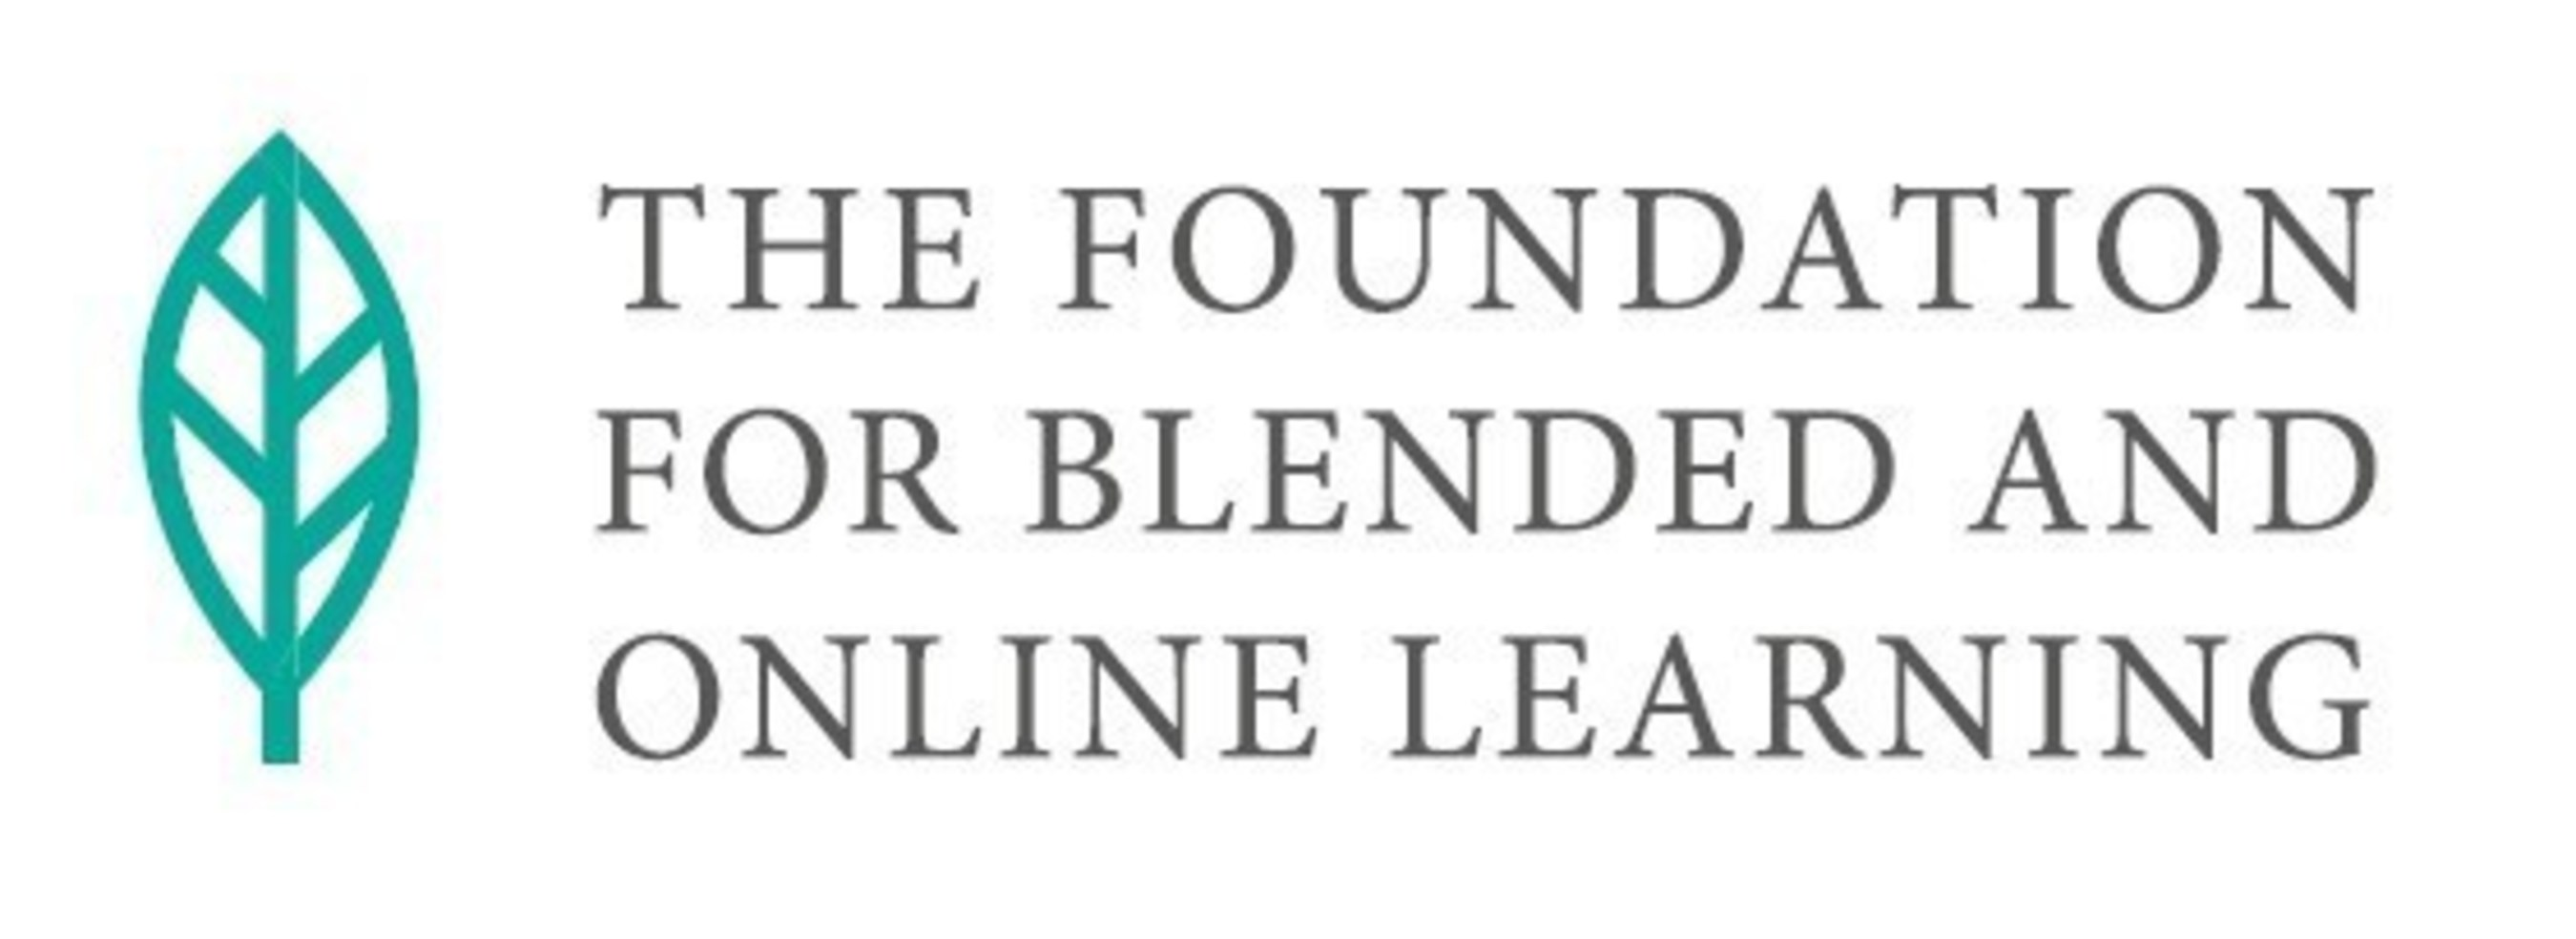 New Foundation for Blended and Online Learning Announces Scholarship and Grant Programs